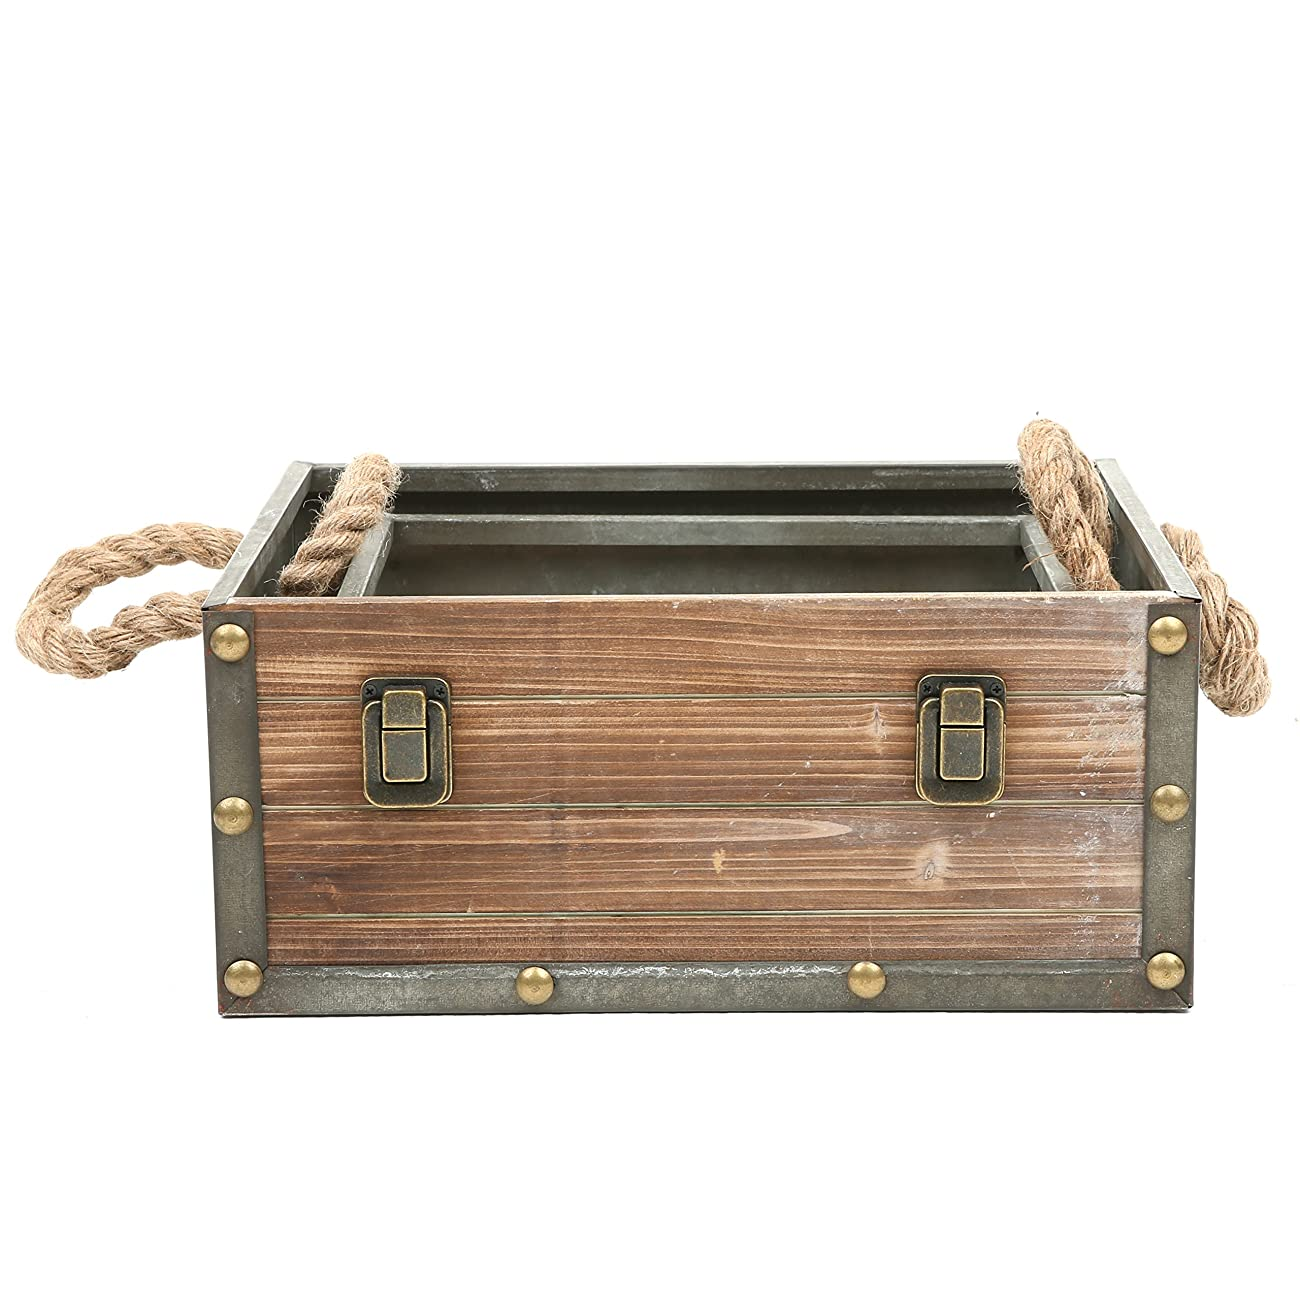 MyGift Set of 2 Wood Crates w/ Rope Handles, Rustic Nesting Storage Boxes, Brown 4